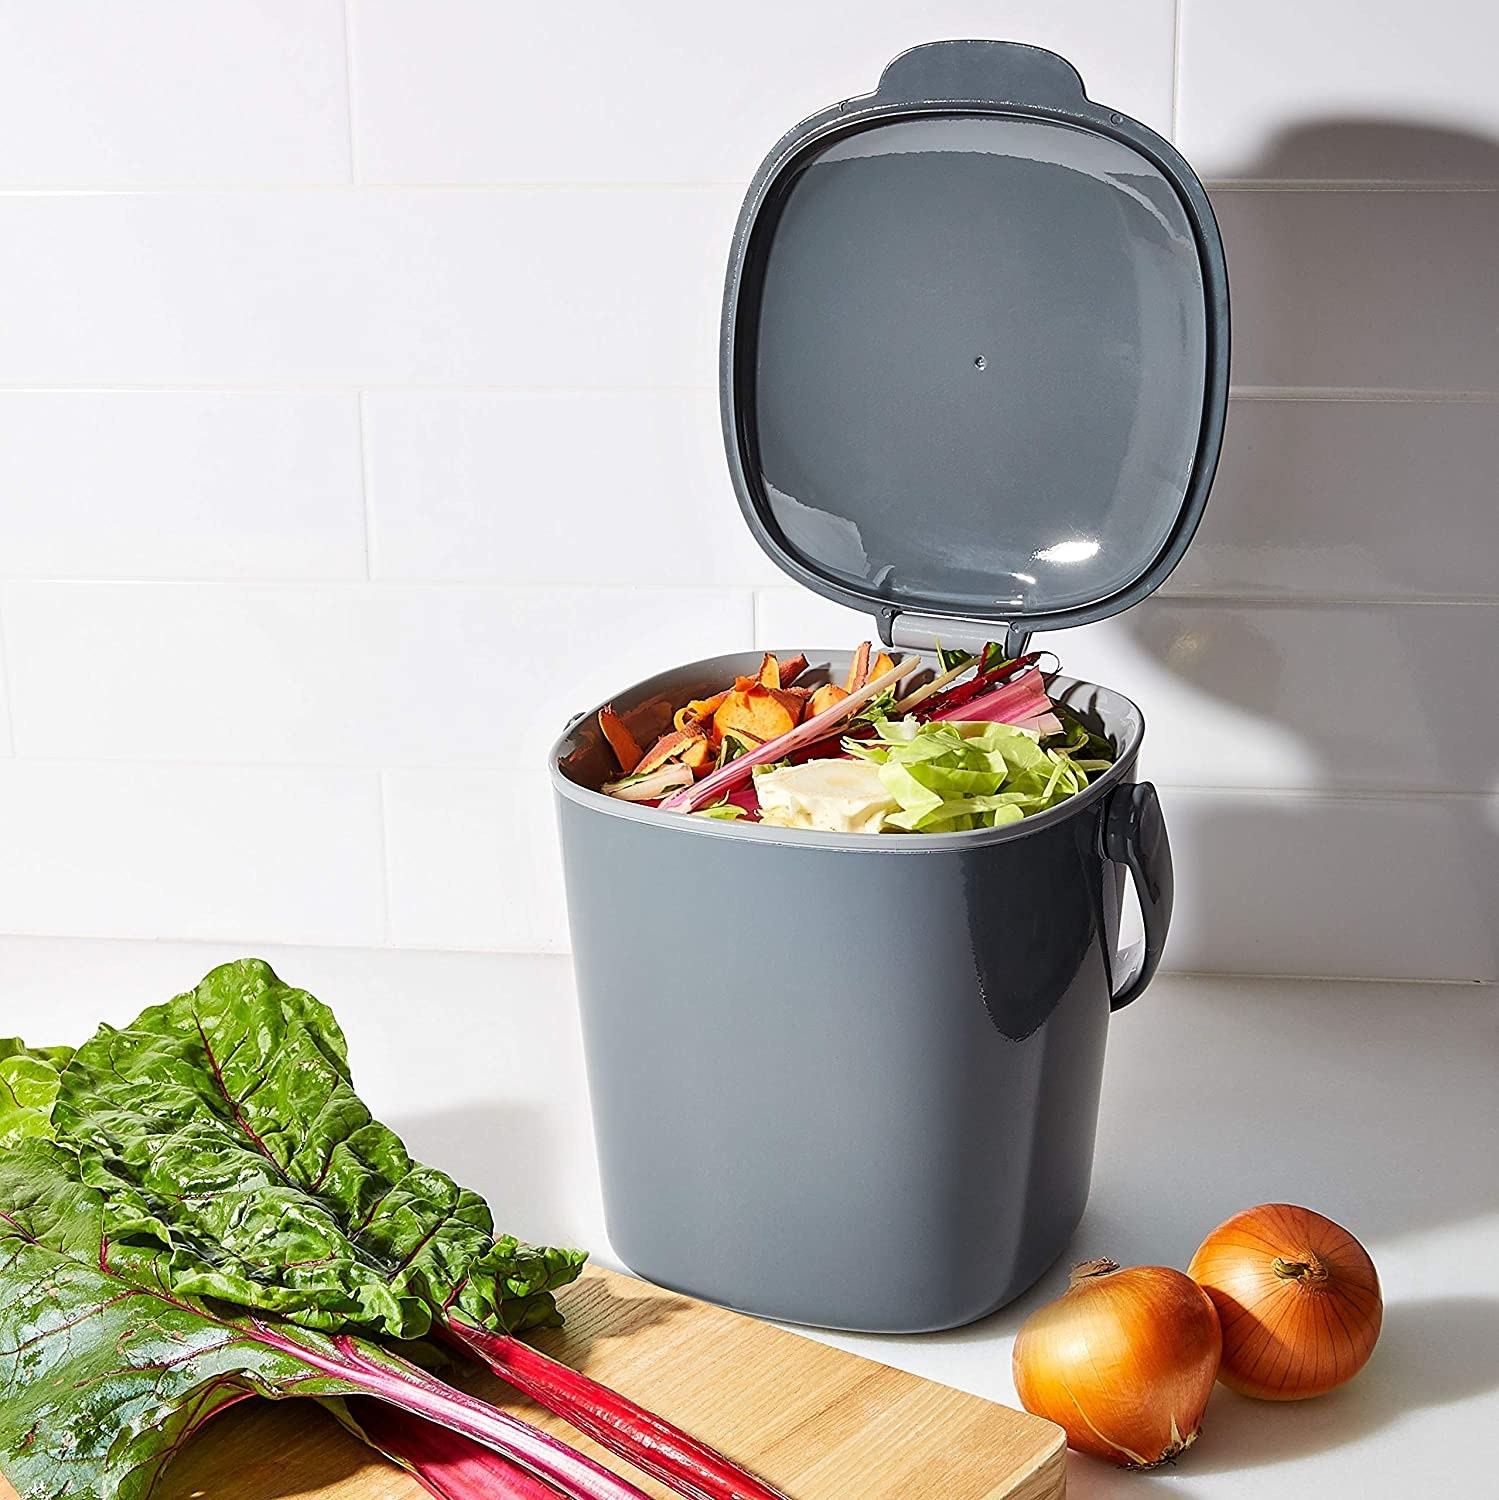 The grey, rounded-corner bin with its lid open, revealing the scraps inside. It has a top handle for easy carrying, and is about as tall with the lid open as the swiss chard sitting next to it